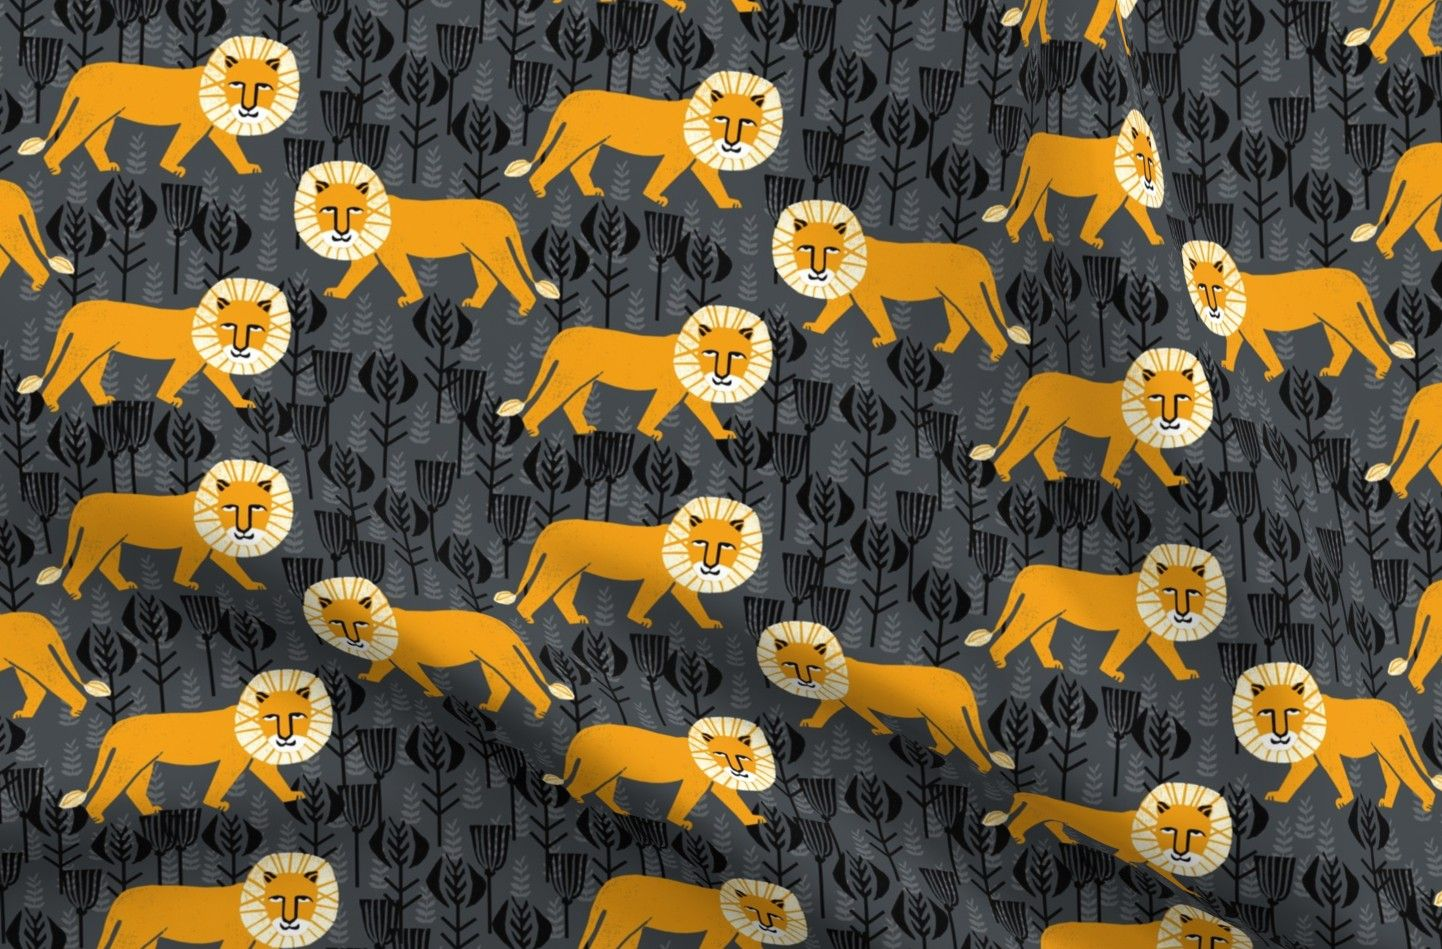 Linen Cotton Canvas Perfect for tablecloths, tea towels, dresses, bags, curtains and pillows. 55% linen, 45% cotton fabric with a versatile medium weight and textured feel. Fat Quarter Featured Print: Lion Animal Safari Block by Andrea Lauren